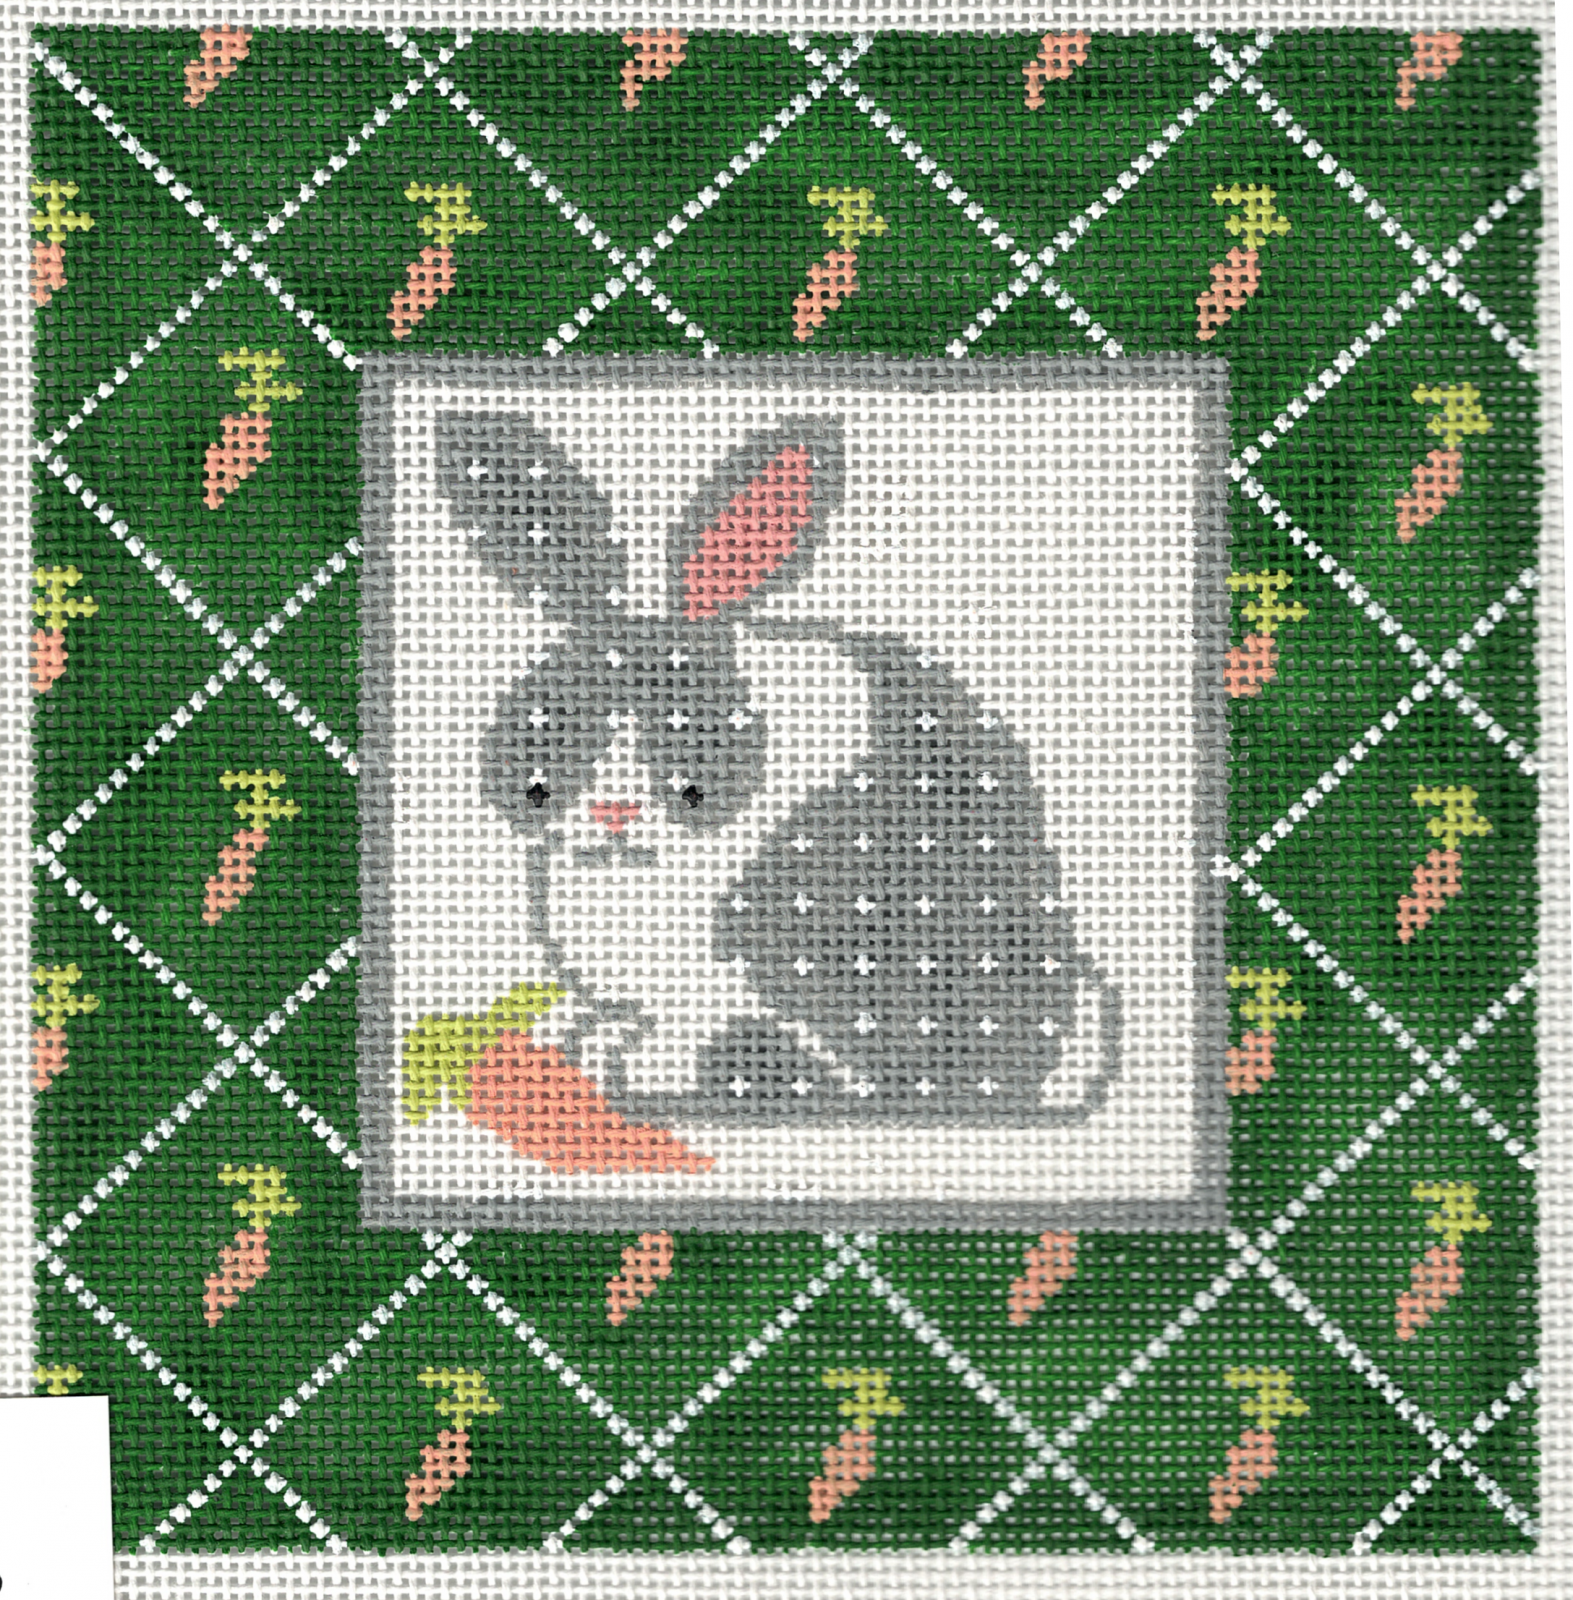 Bunny with Carrot Border - 13M